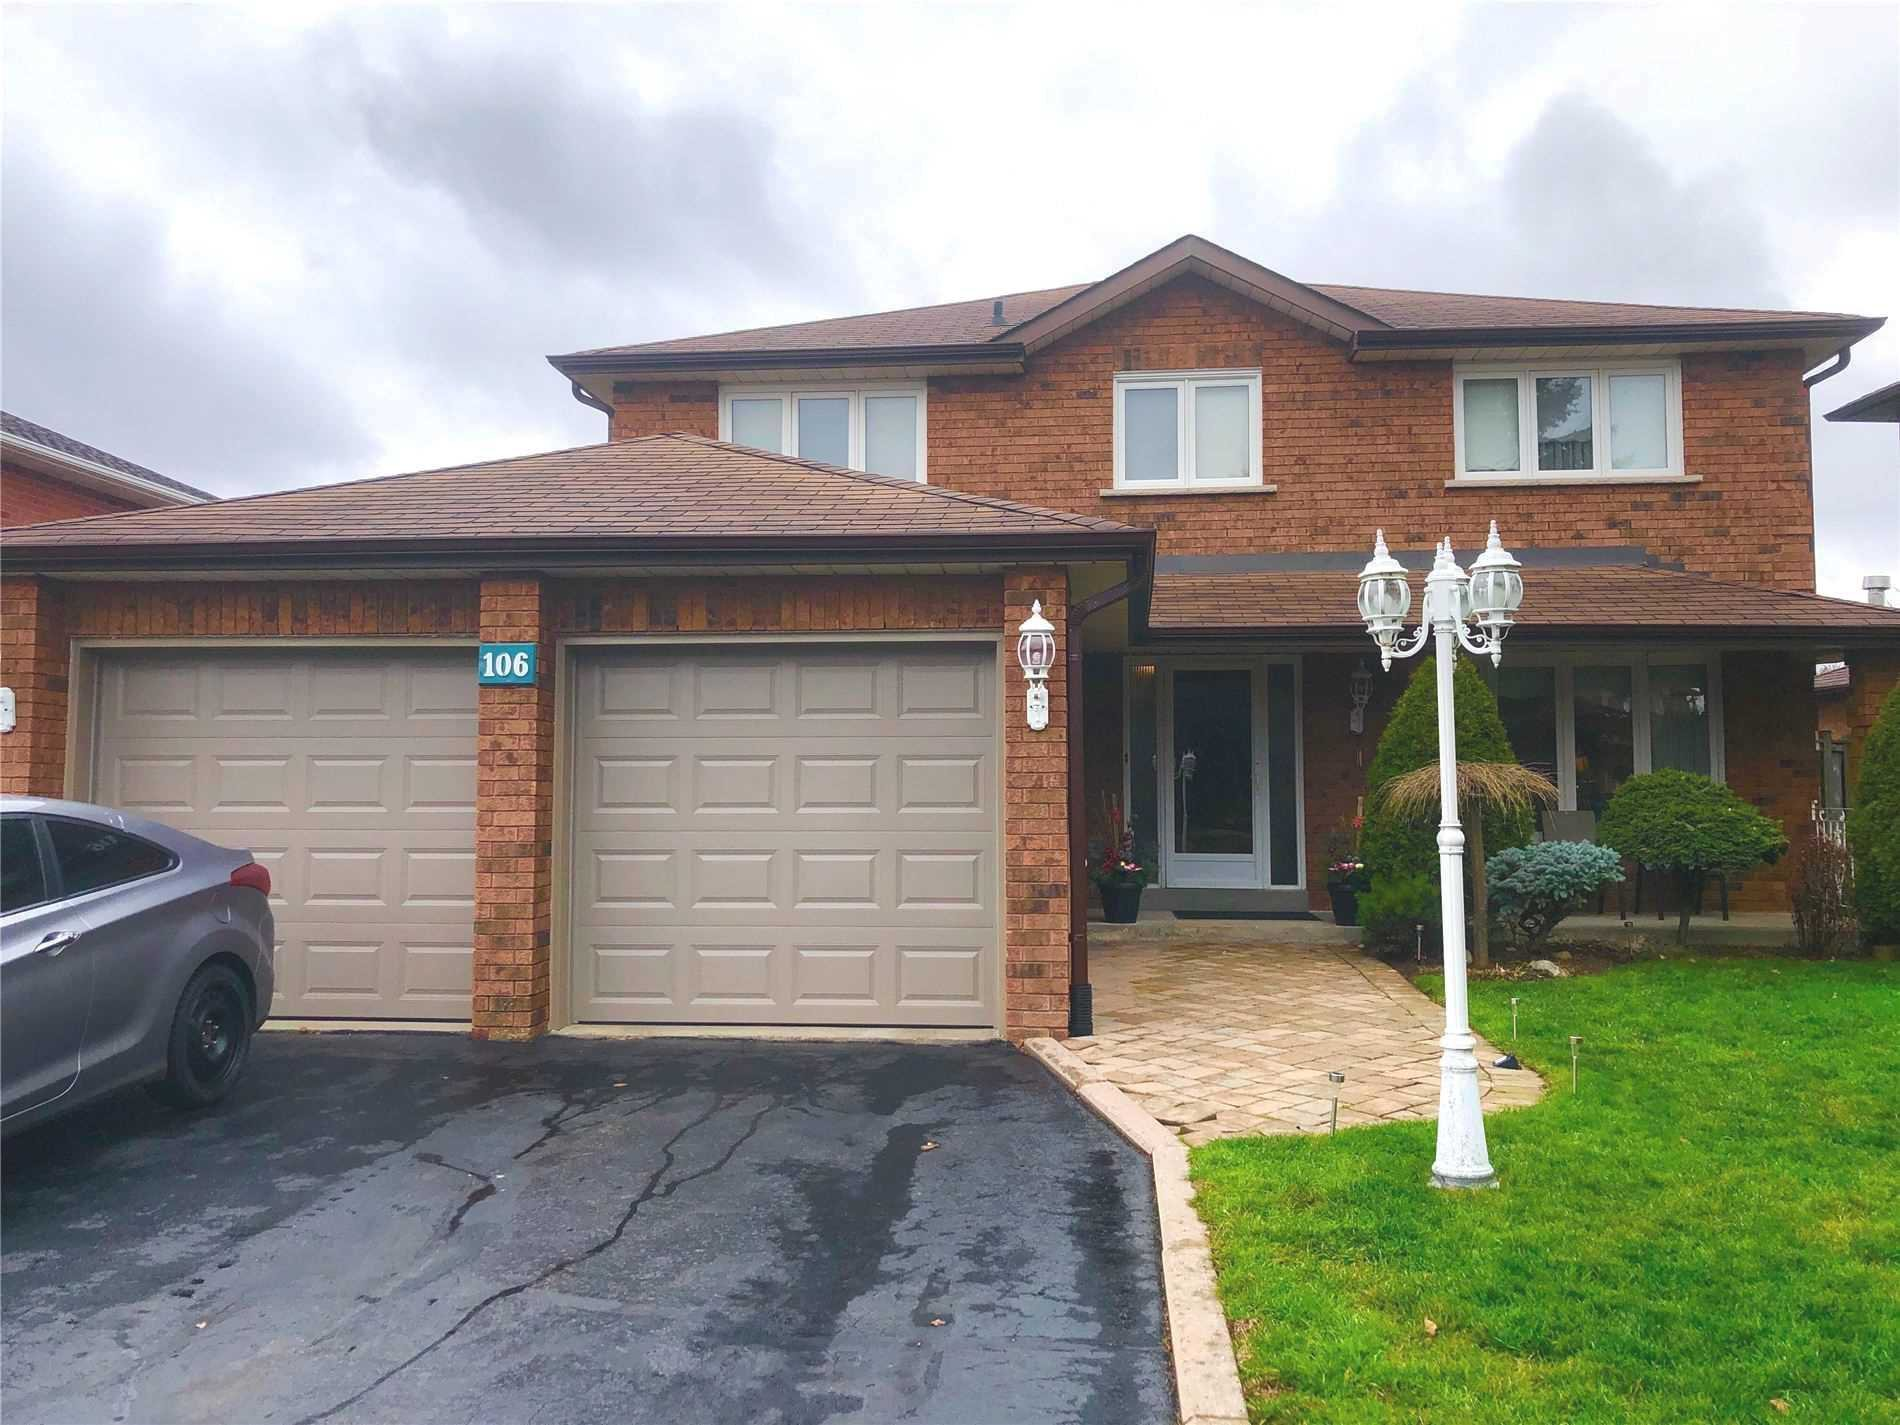 Main Photo: 106 Aspen Cres in Whitchurch-Stouffville: Stouffville Freehold for sale : MLS®# N4999401